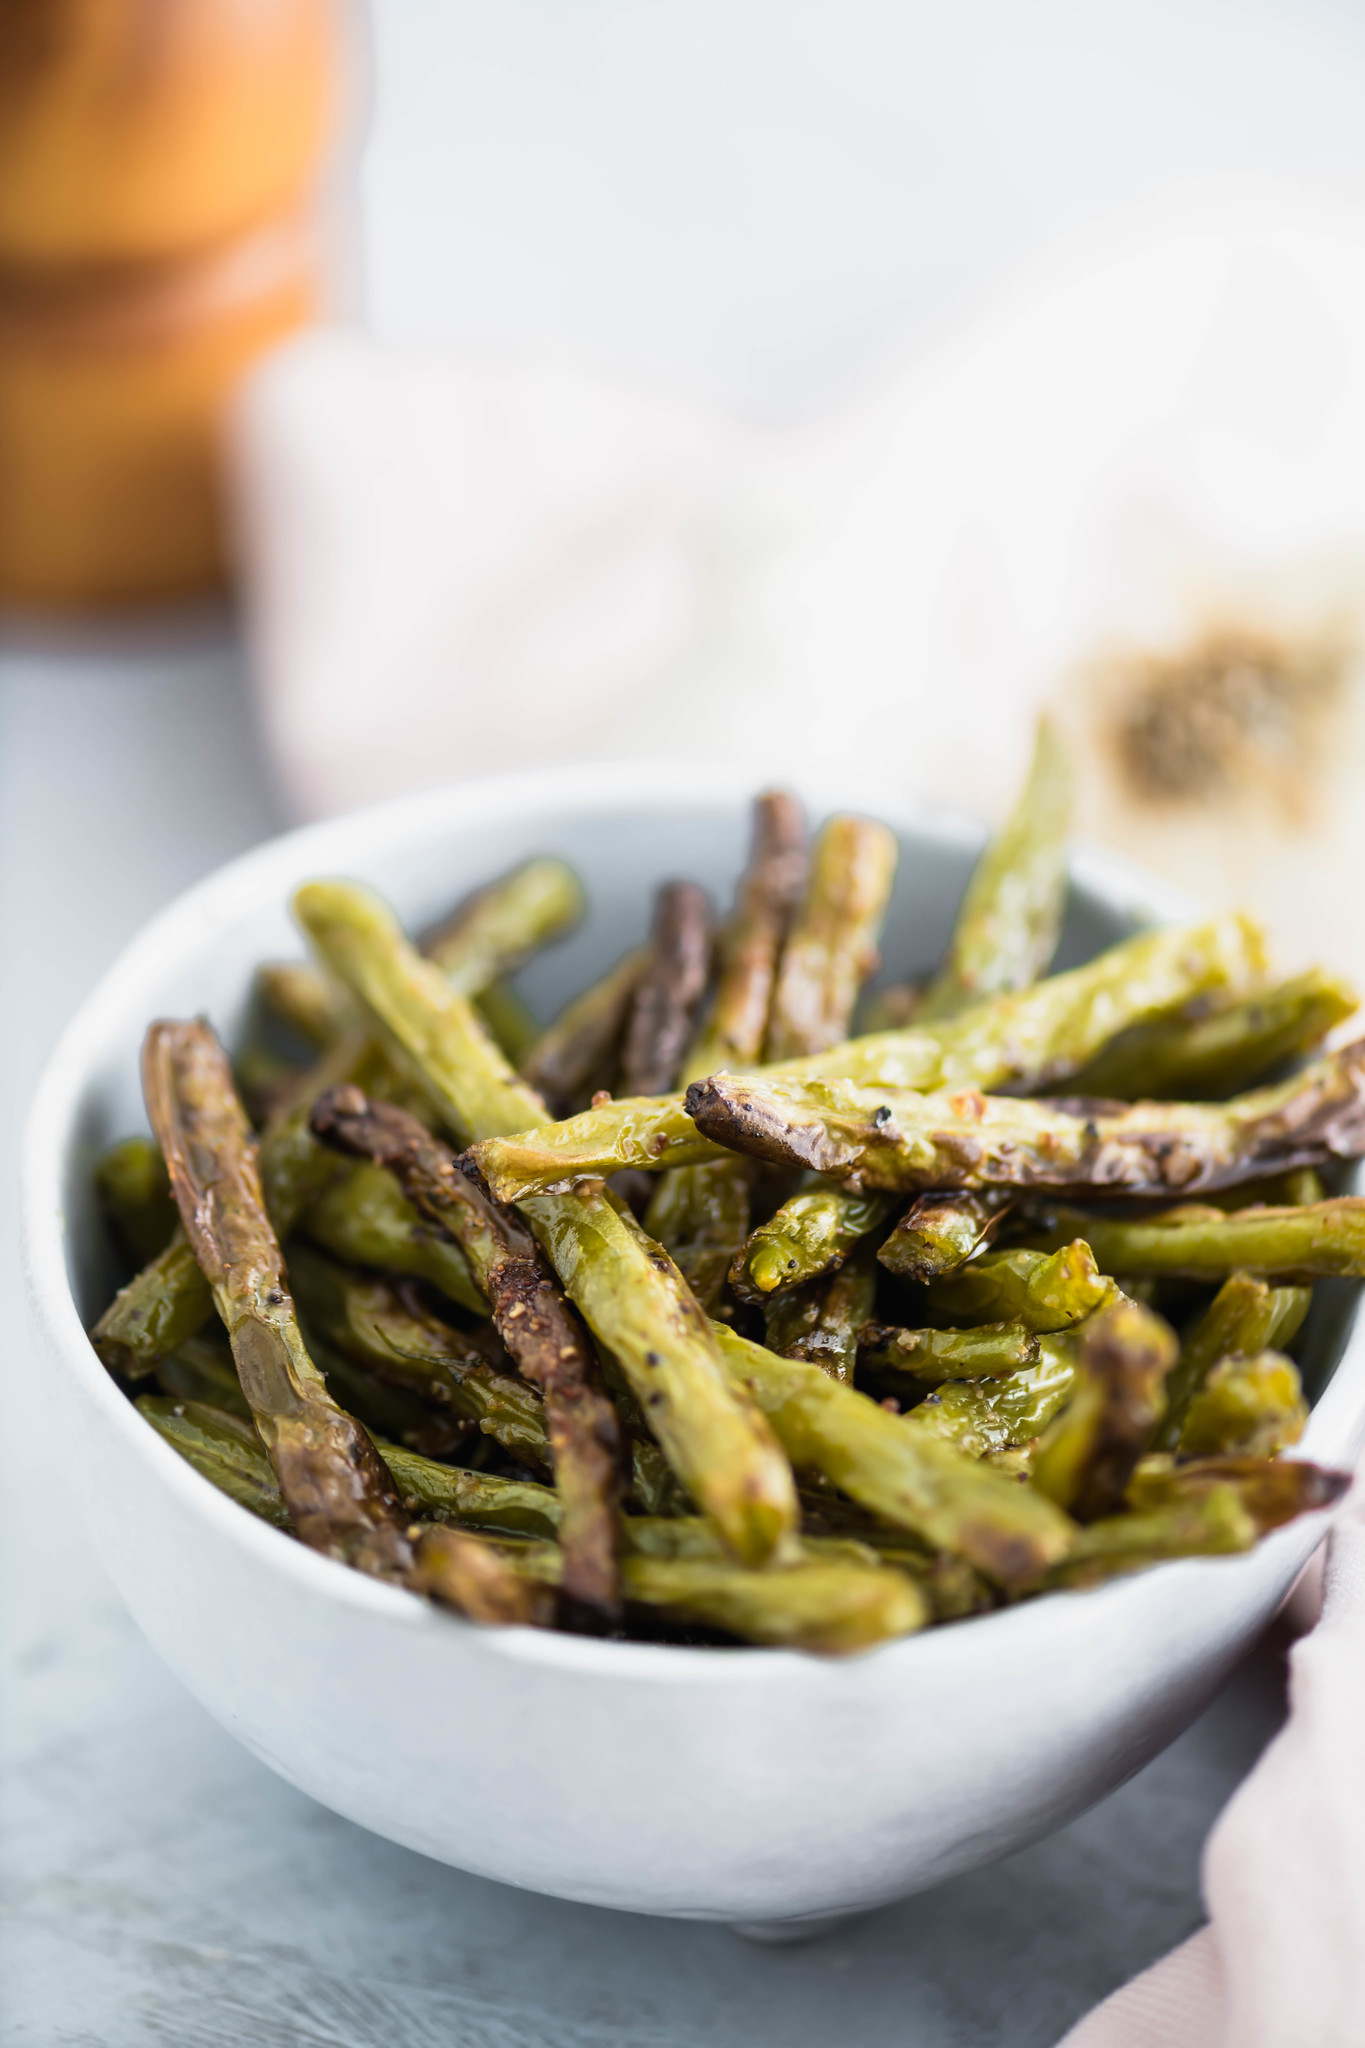 Need an easy side dish that takes less than 30 minutes? These Roasted Green Beans are super simple to make and go with everything.